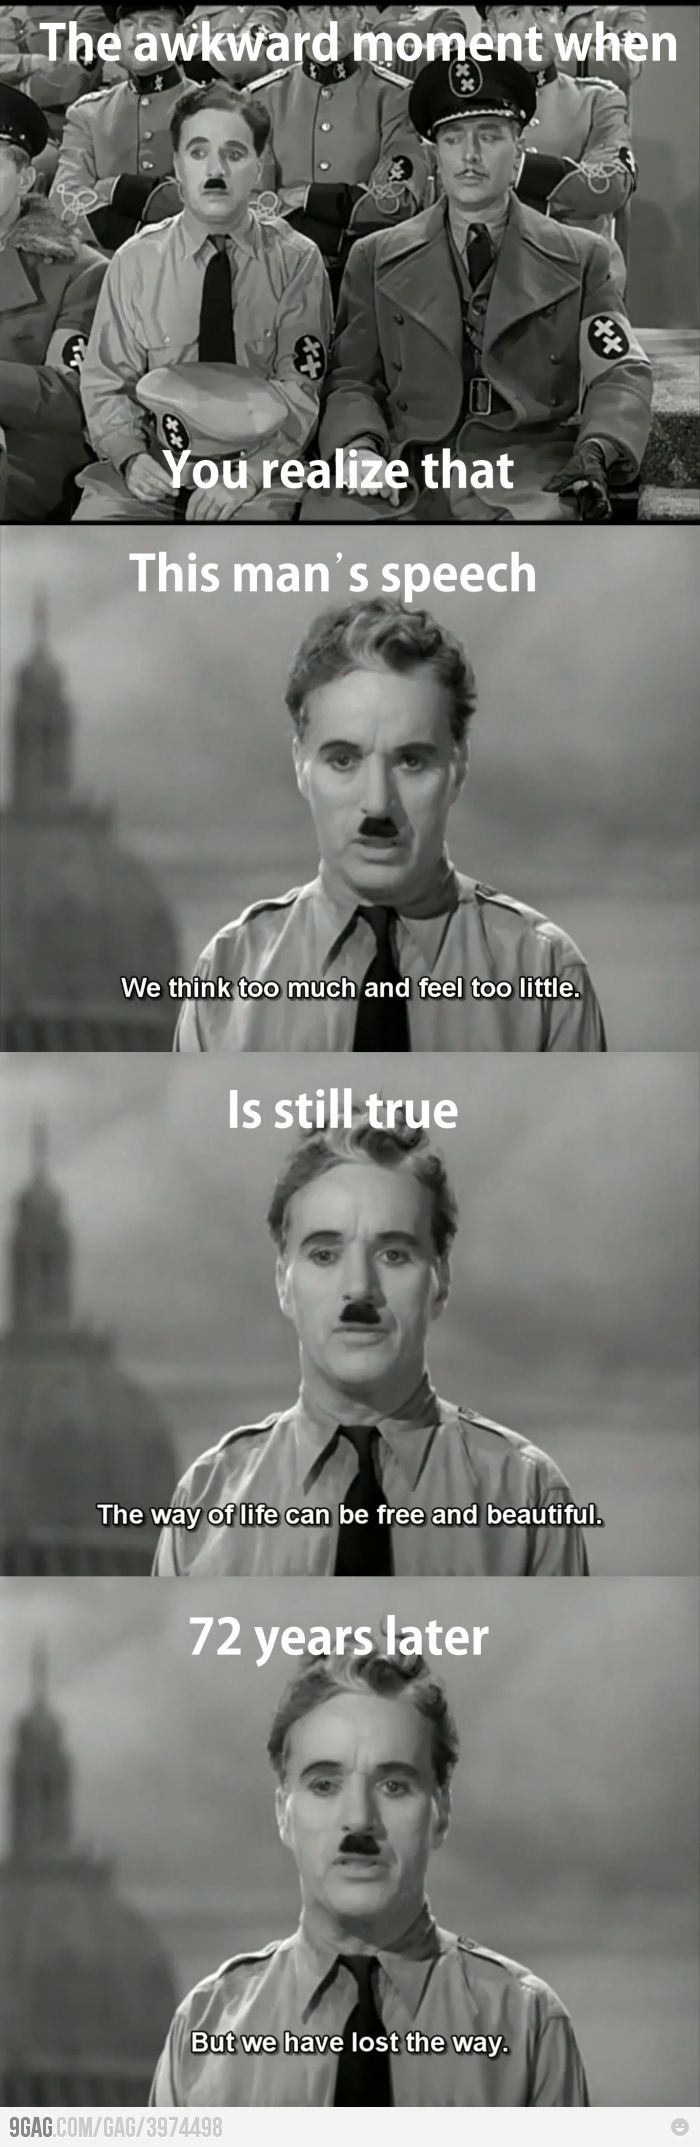 Charlie Chaplin Was Right About The Humanity Random